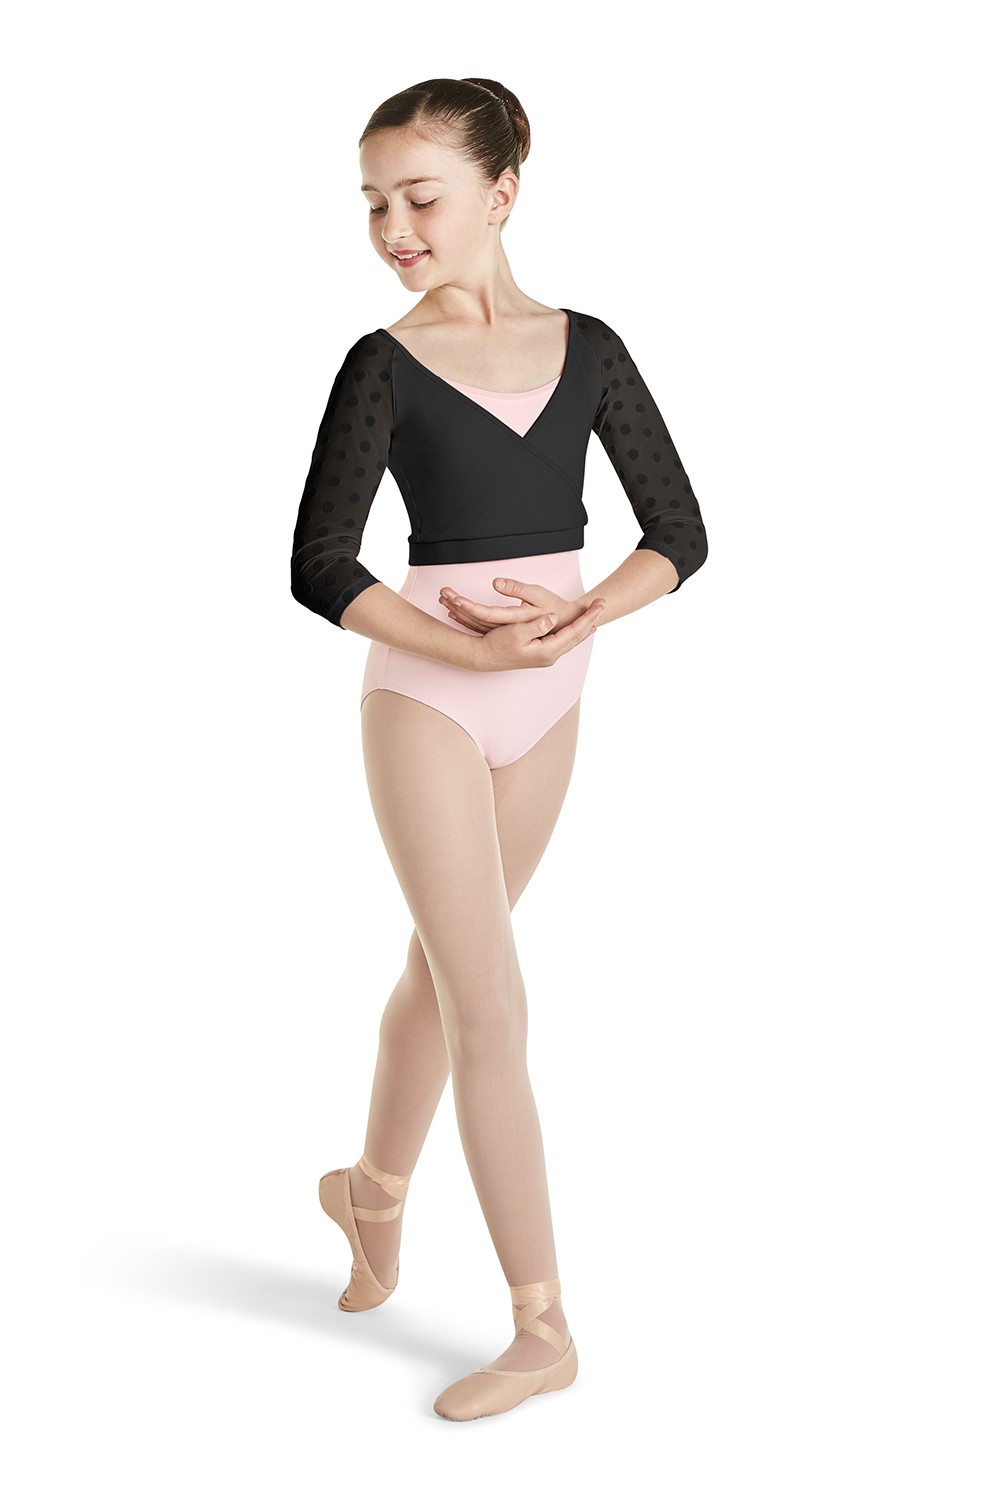 595f7a1434c6 BLOCH® Children s Dancewear   Accessories - BLOCH® US Store